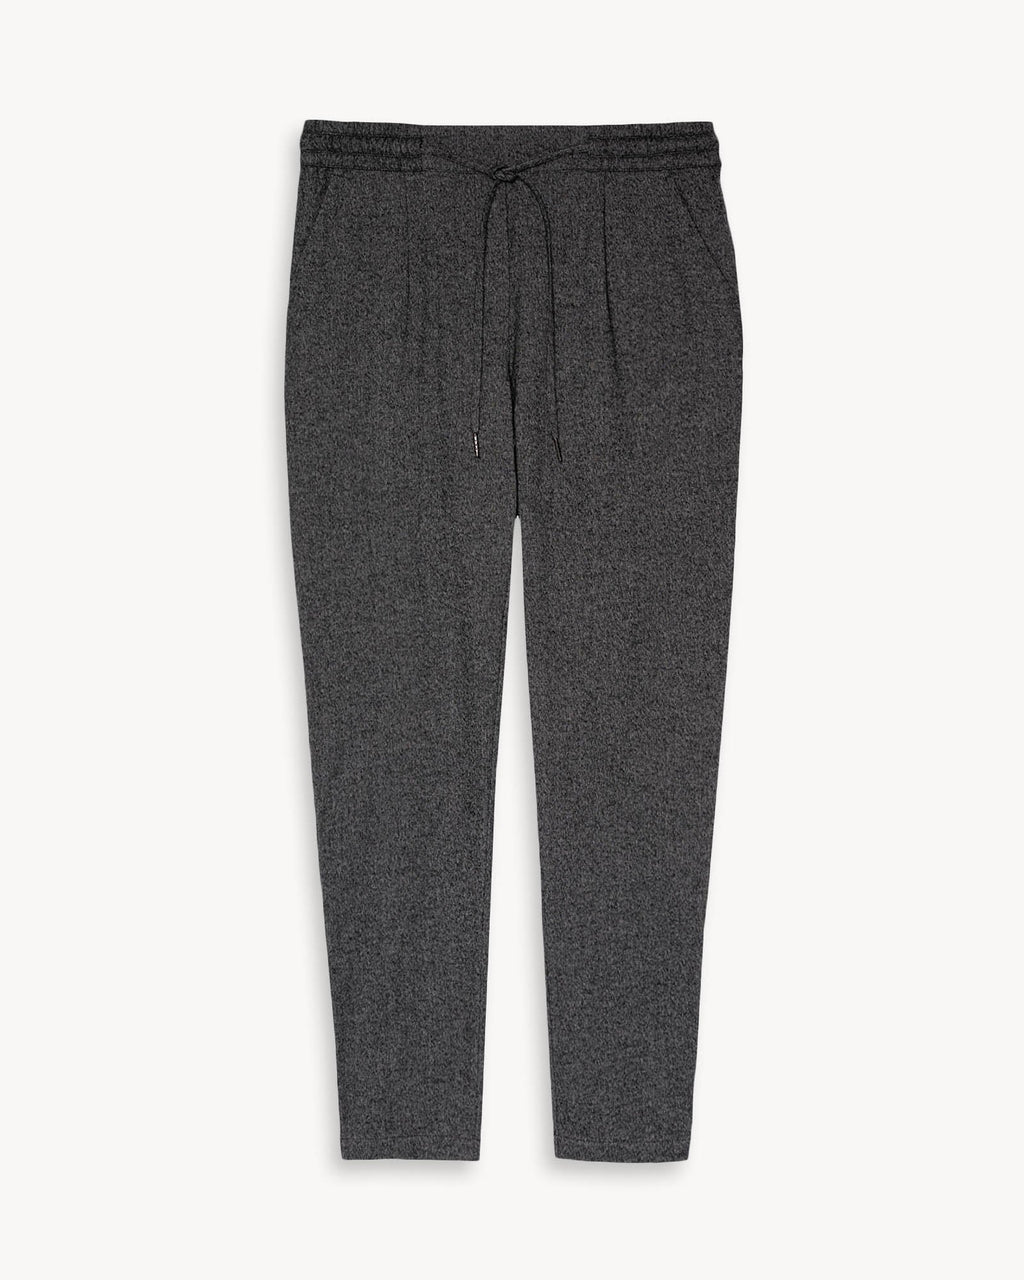 variant_1 | EN Trousers Women with elastic waistband black anthracite | DE Damen Hose mit Gummibund schwarz anthrazit melange